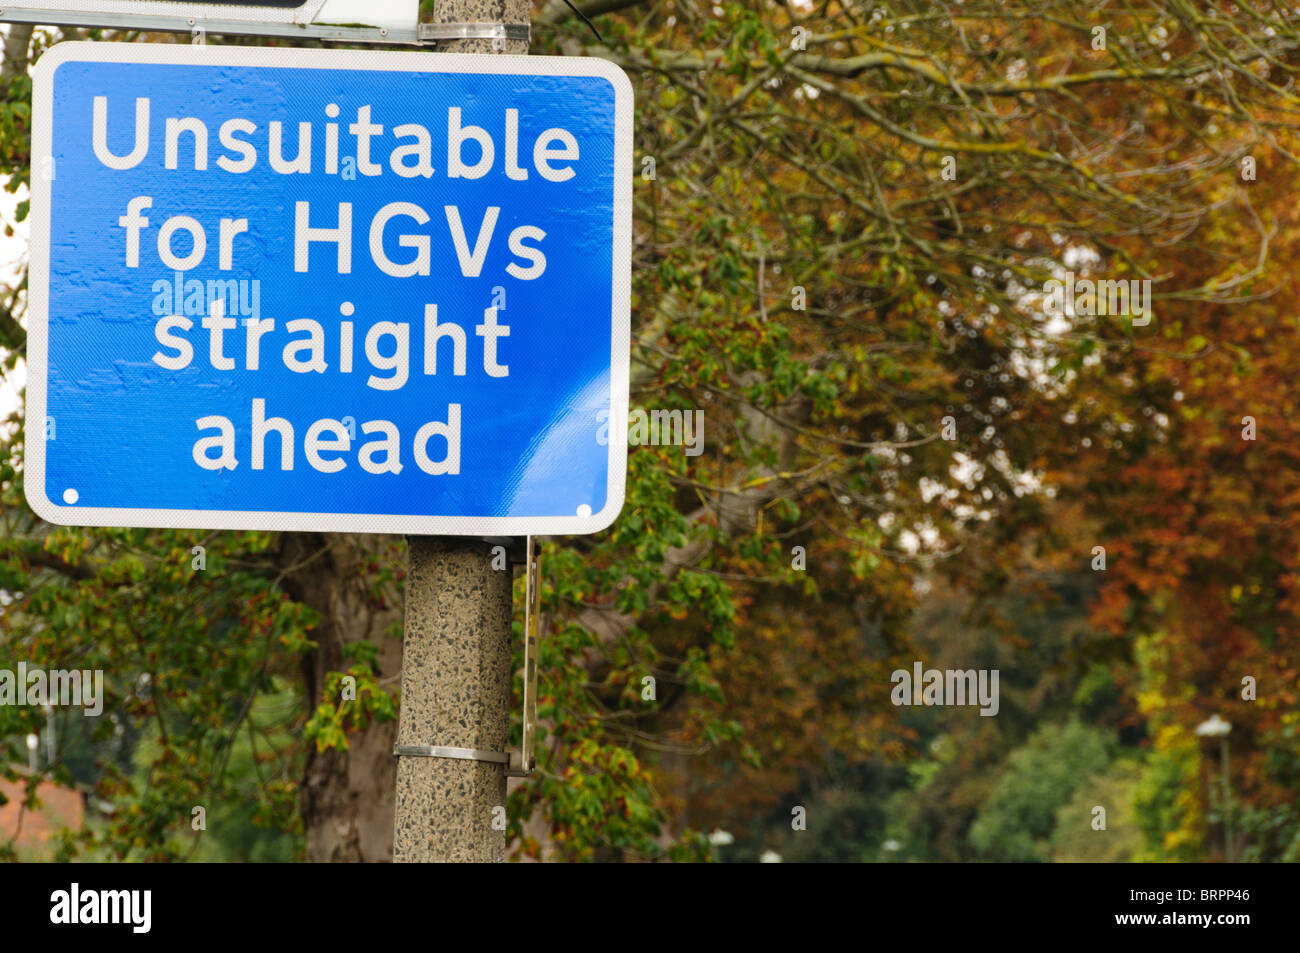 An English road sign warning that the road ahead is unsuitable for Heavy Goods Vehicles - Stock Image